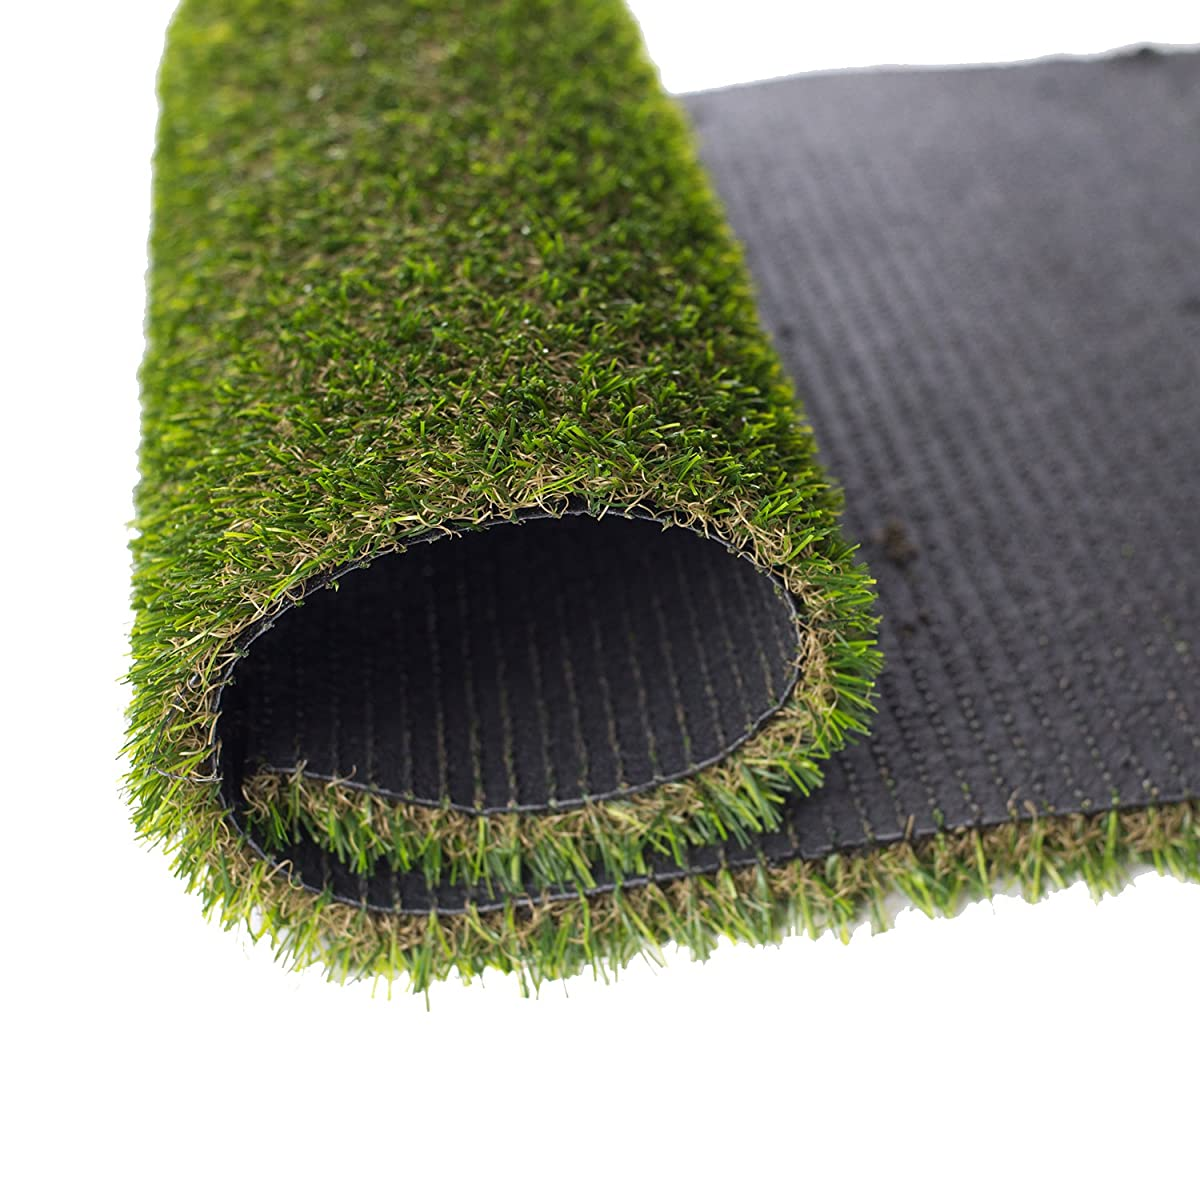 "GOLDEN MOON Artificial Grass Rug Series PE Indoor/Outdoor Green Decorative Synthetic Artificial Grass Turf Area Rug 1"" Pile Height 3x5"